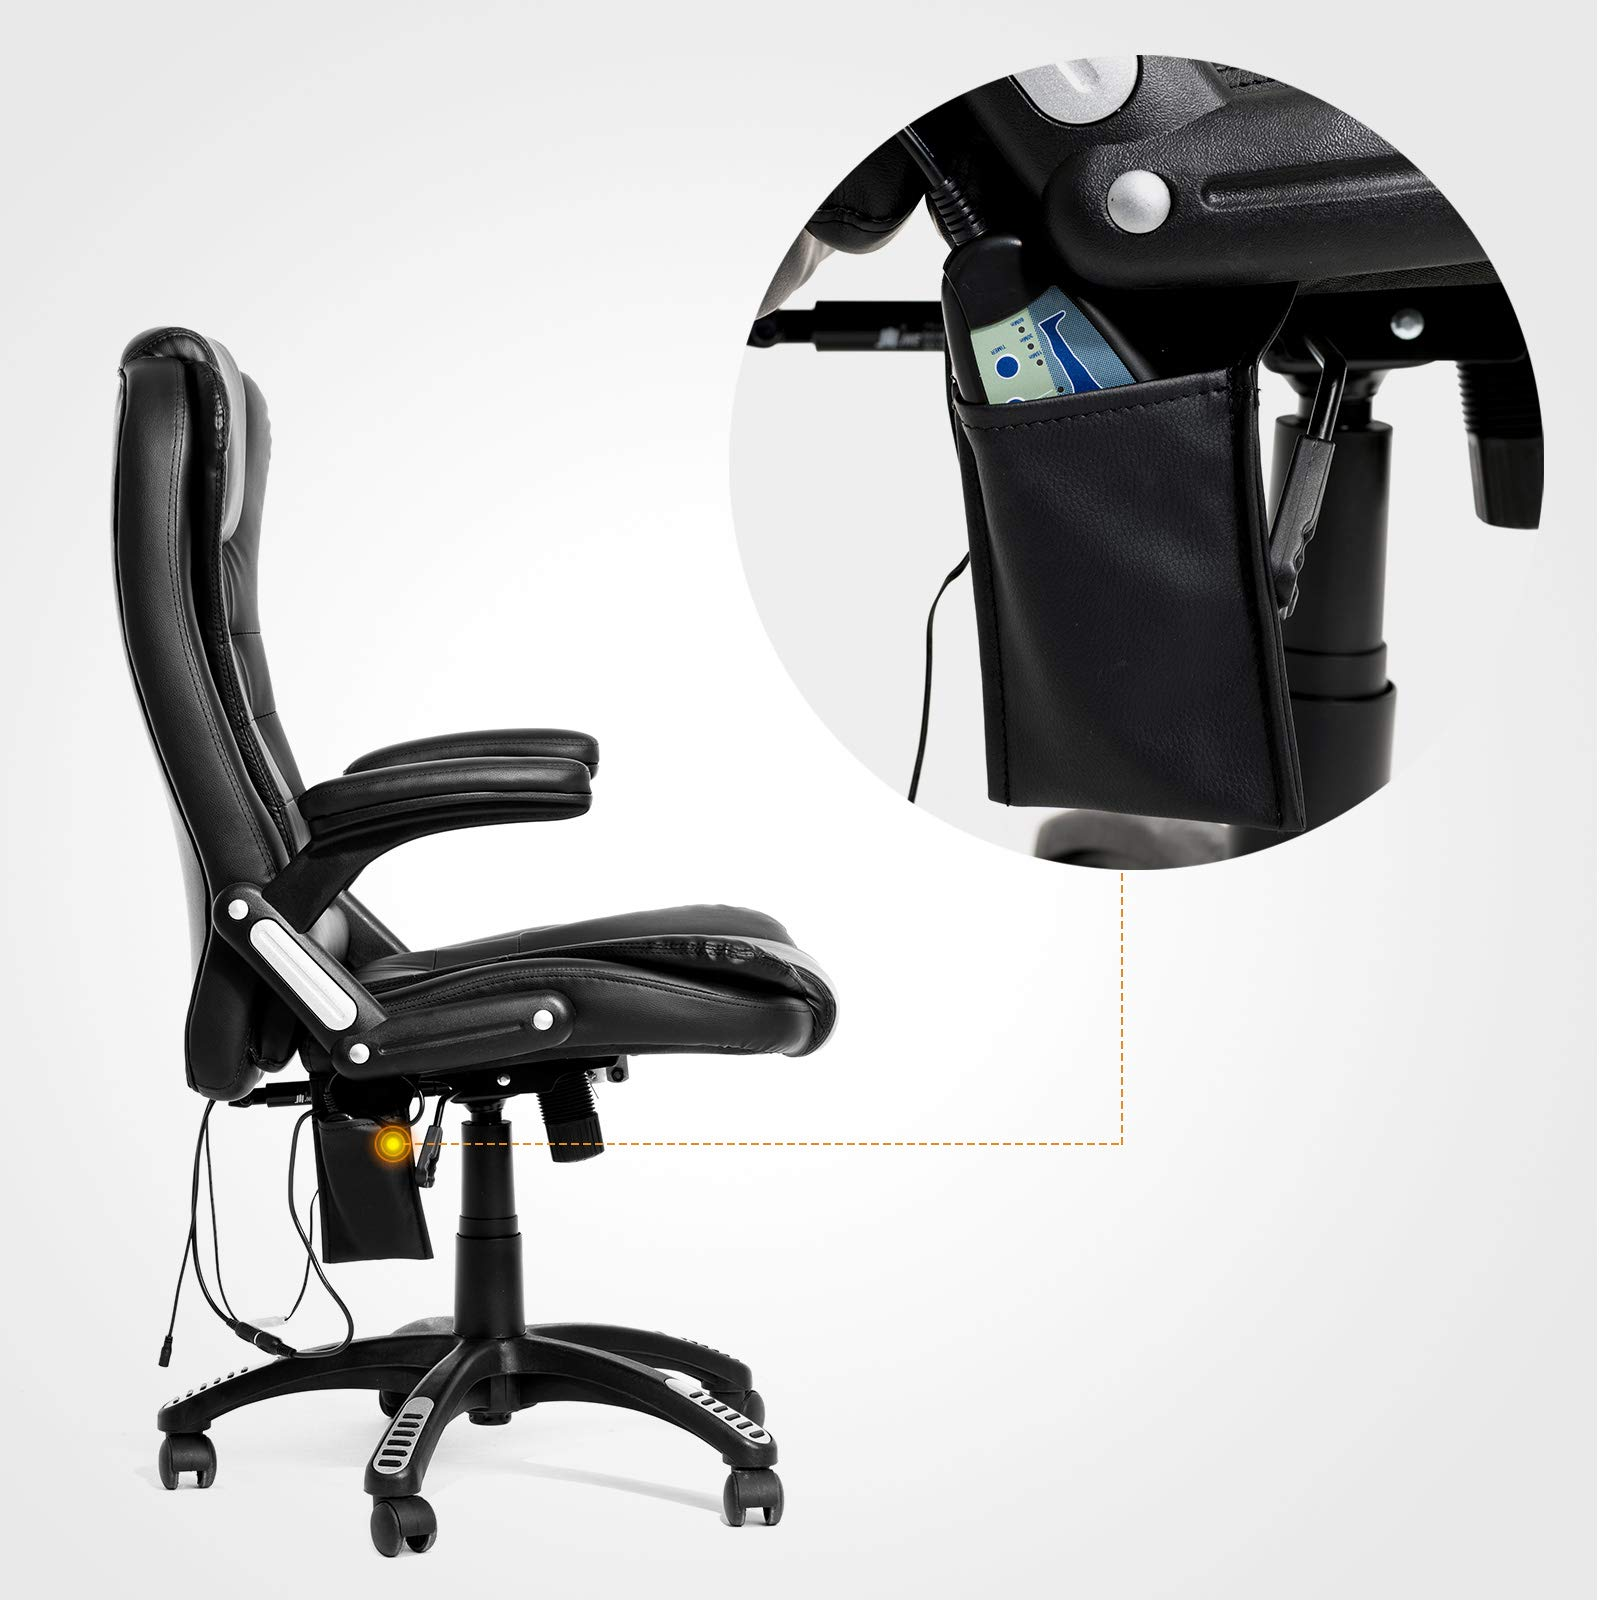 Mecor Heated Office Massage High-Back PU Leather Computer Chair w/360 Degree Adjustable Height & Armrest (Black) by Mecor (Image #5)